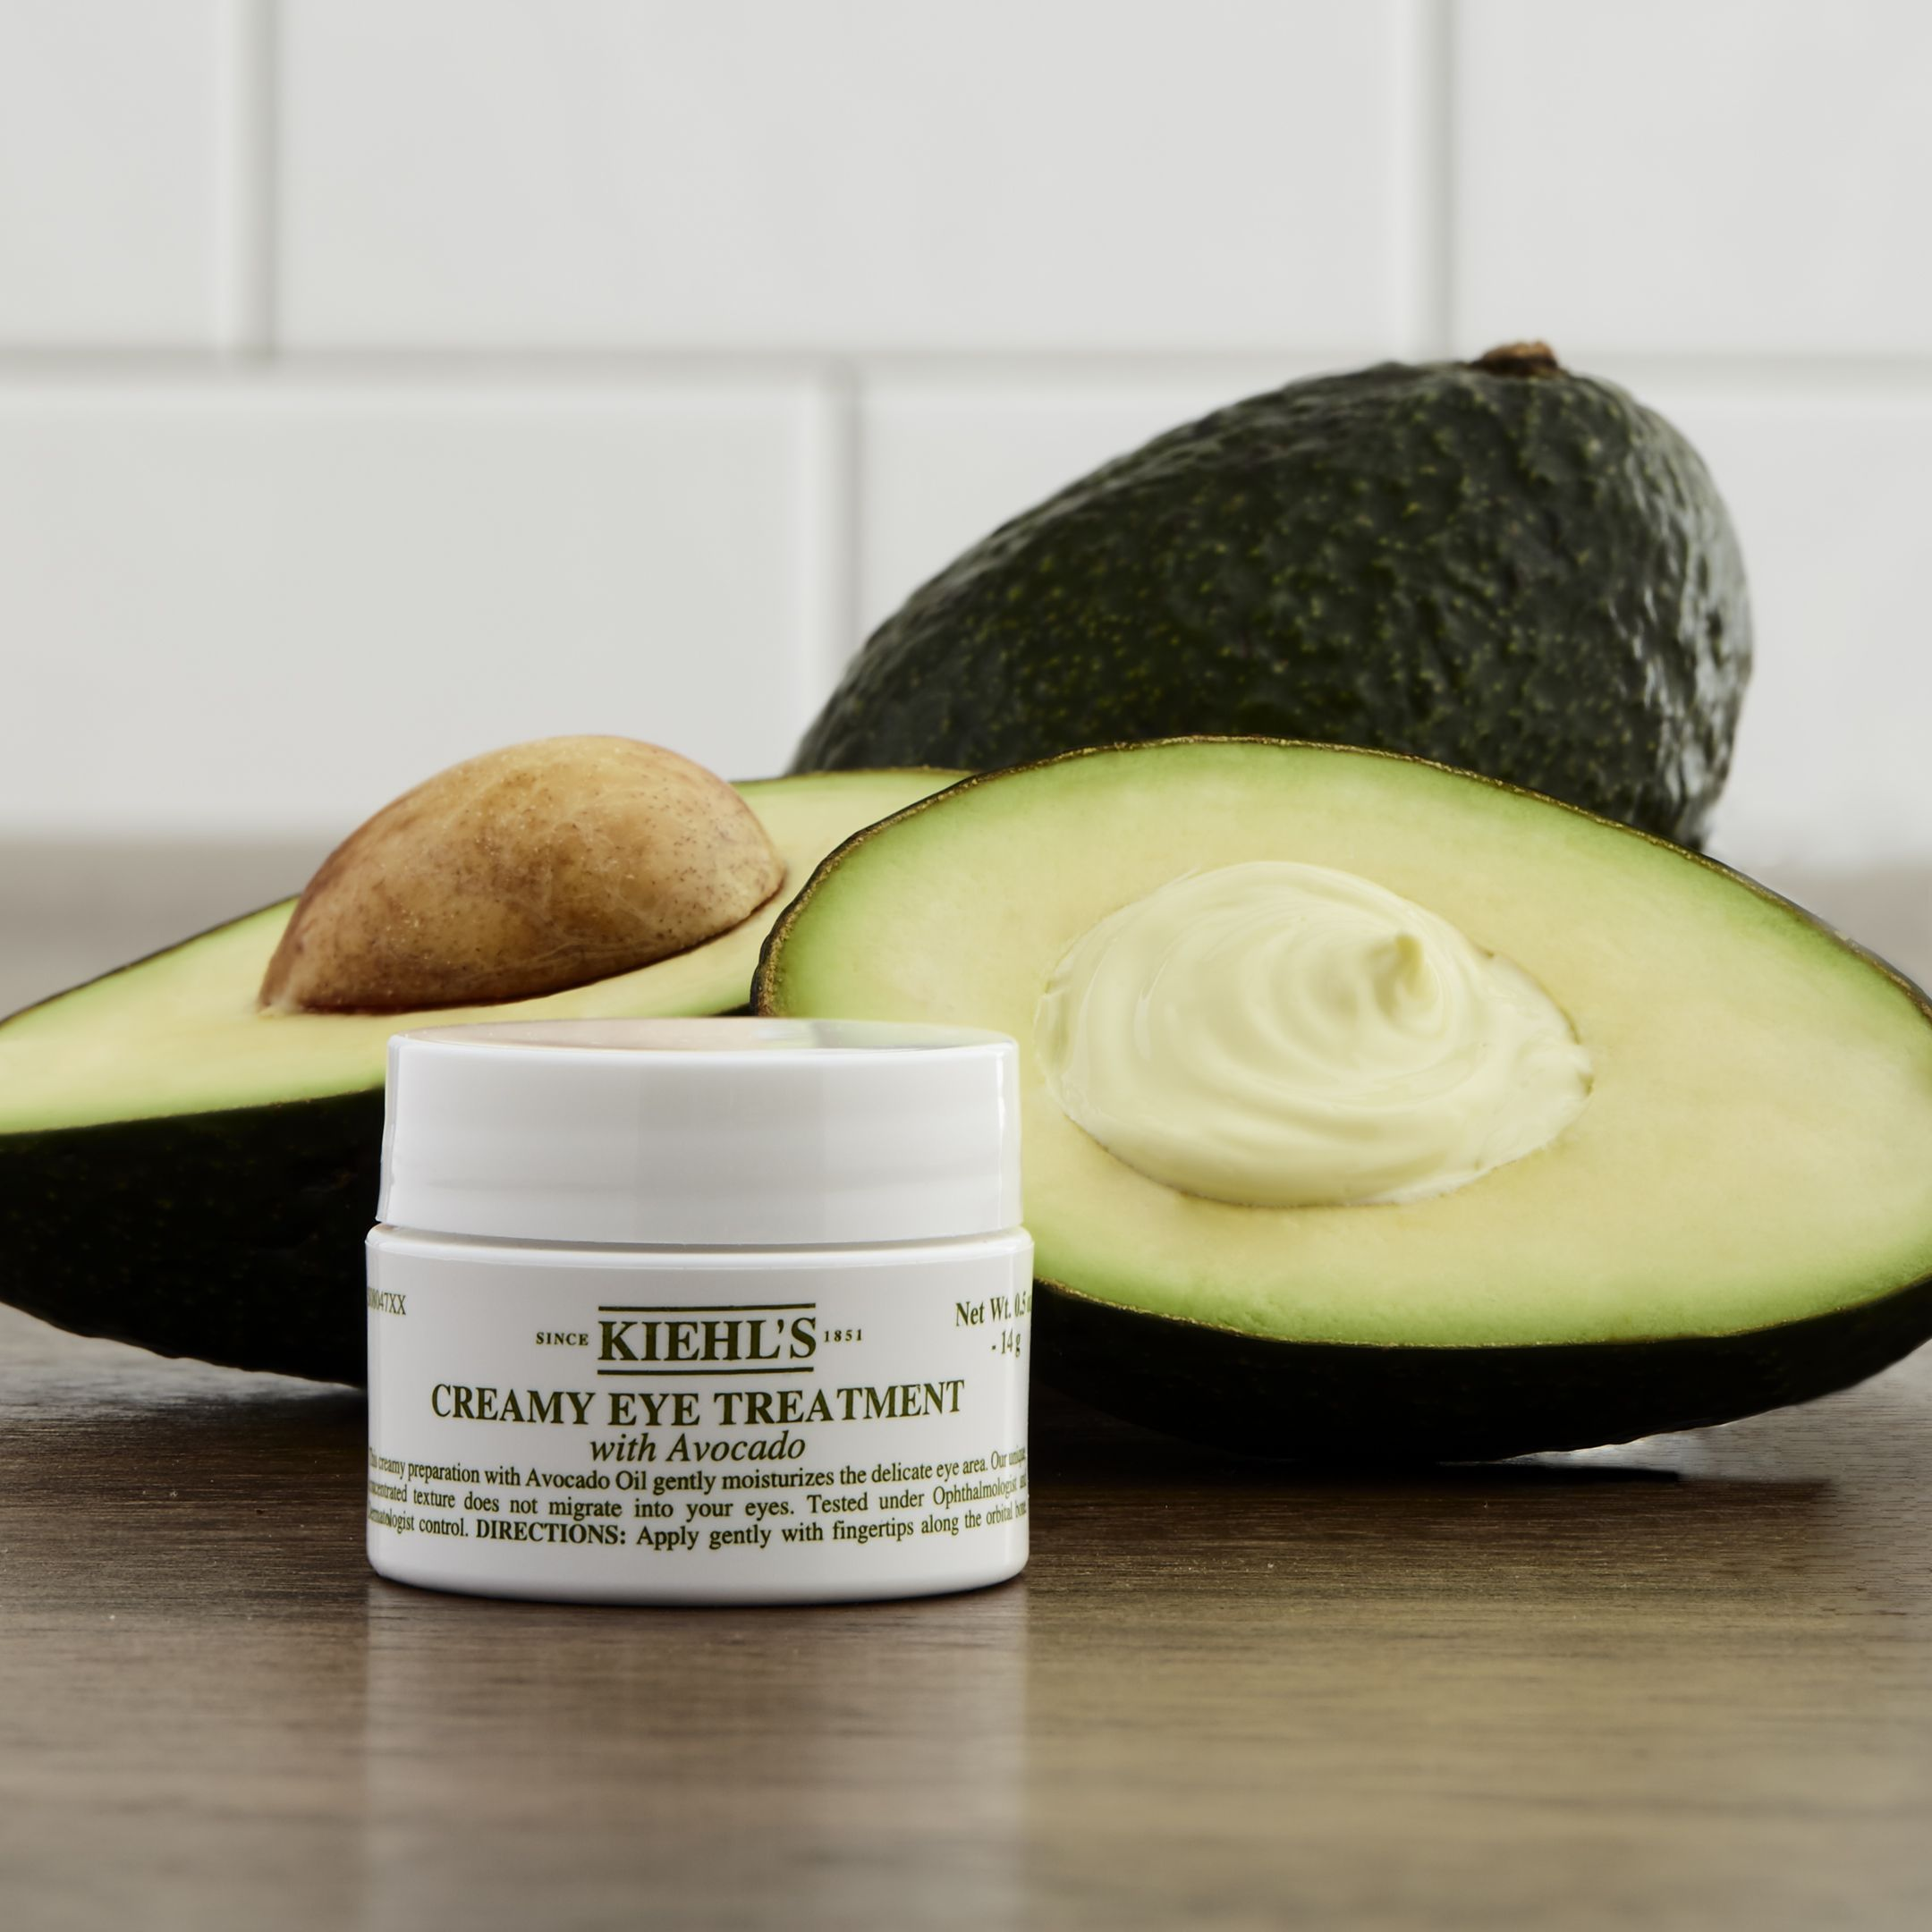 Kiehl's Creamy Eye Treatment with Avocado is a moisturizing eye cream made with a unique blend of nourishing Avocado Oil and luxurious Shea Butter. This eye cream does not migrate into the eyes, but stays put to provide hydration to the sensitive eye area. Dermatologist and Ophthalmologist tested!